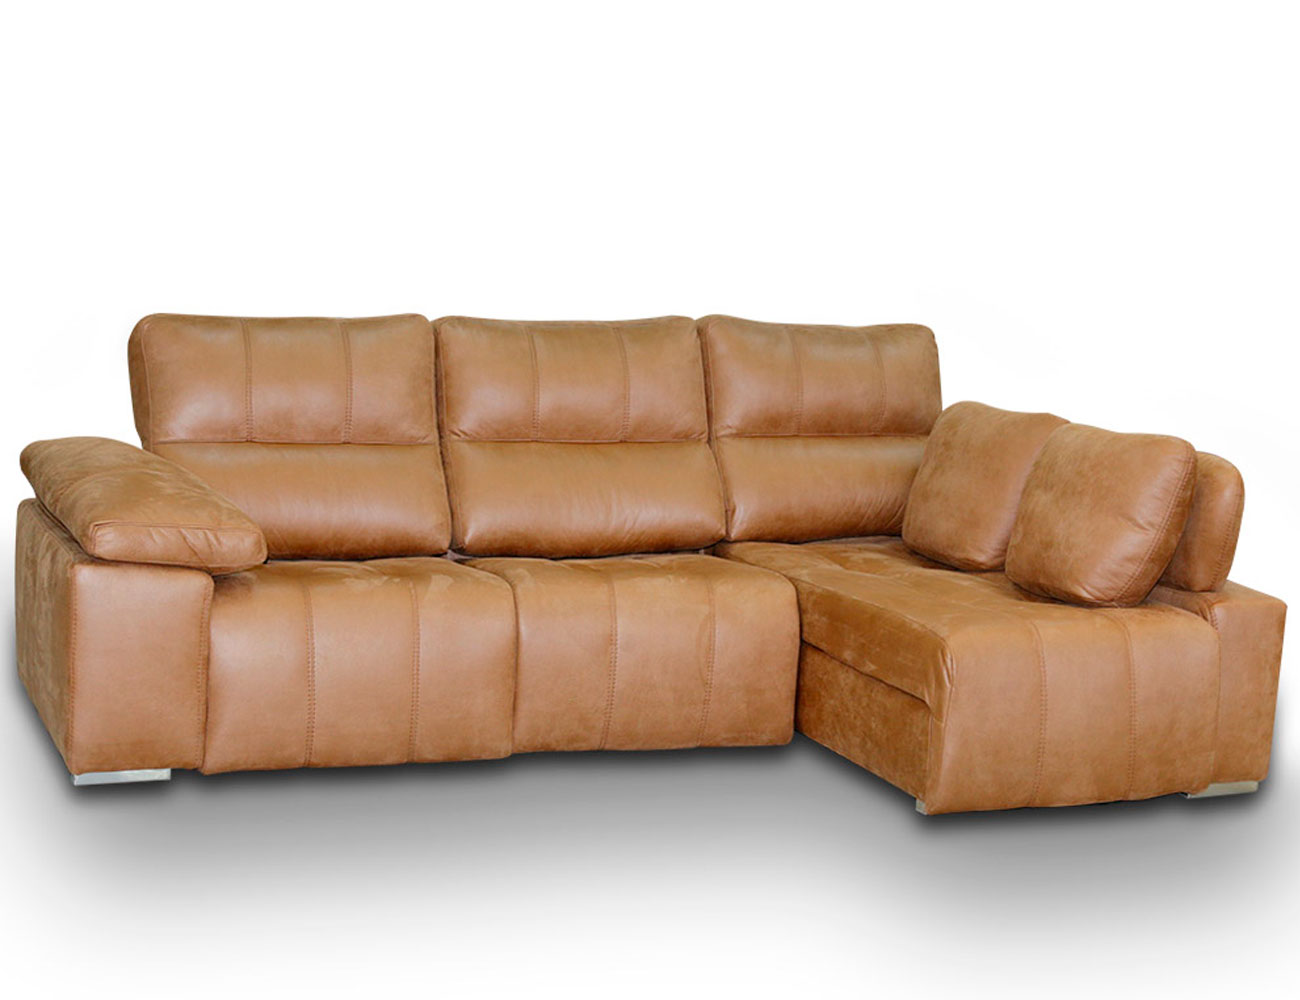 Sofa chaiselongue relax 2 motores anti manchas6